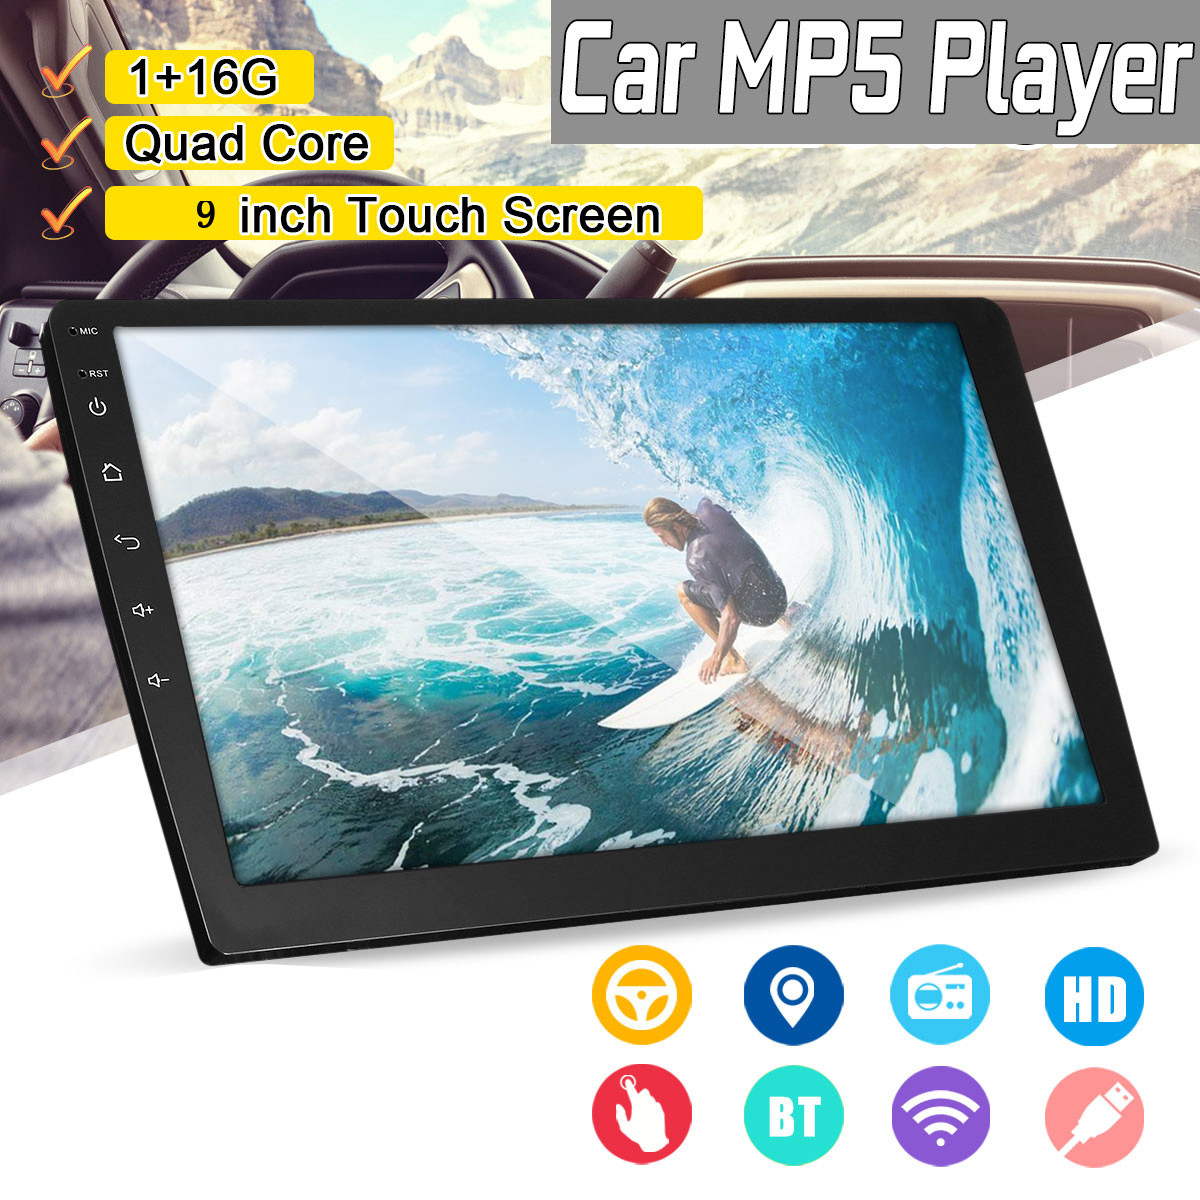 9 Inch 2 DIN 1+16G Car MP5 Player Quad Core Stereo Radio IPS Touch Screen bluetooth DAB DVR 11